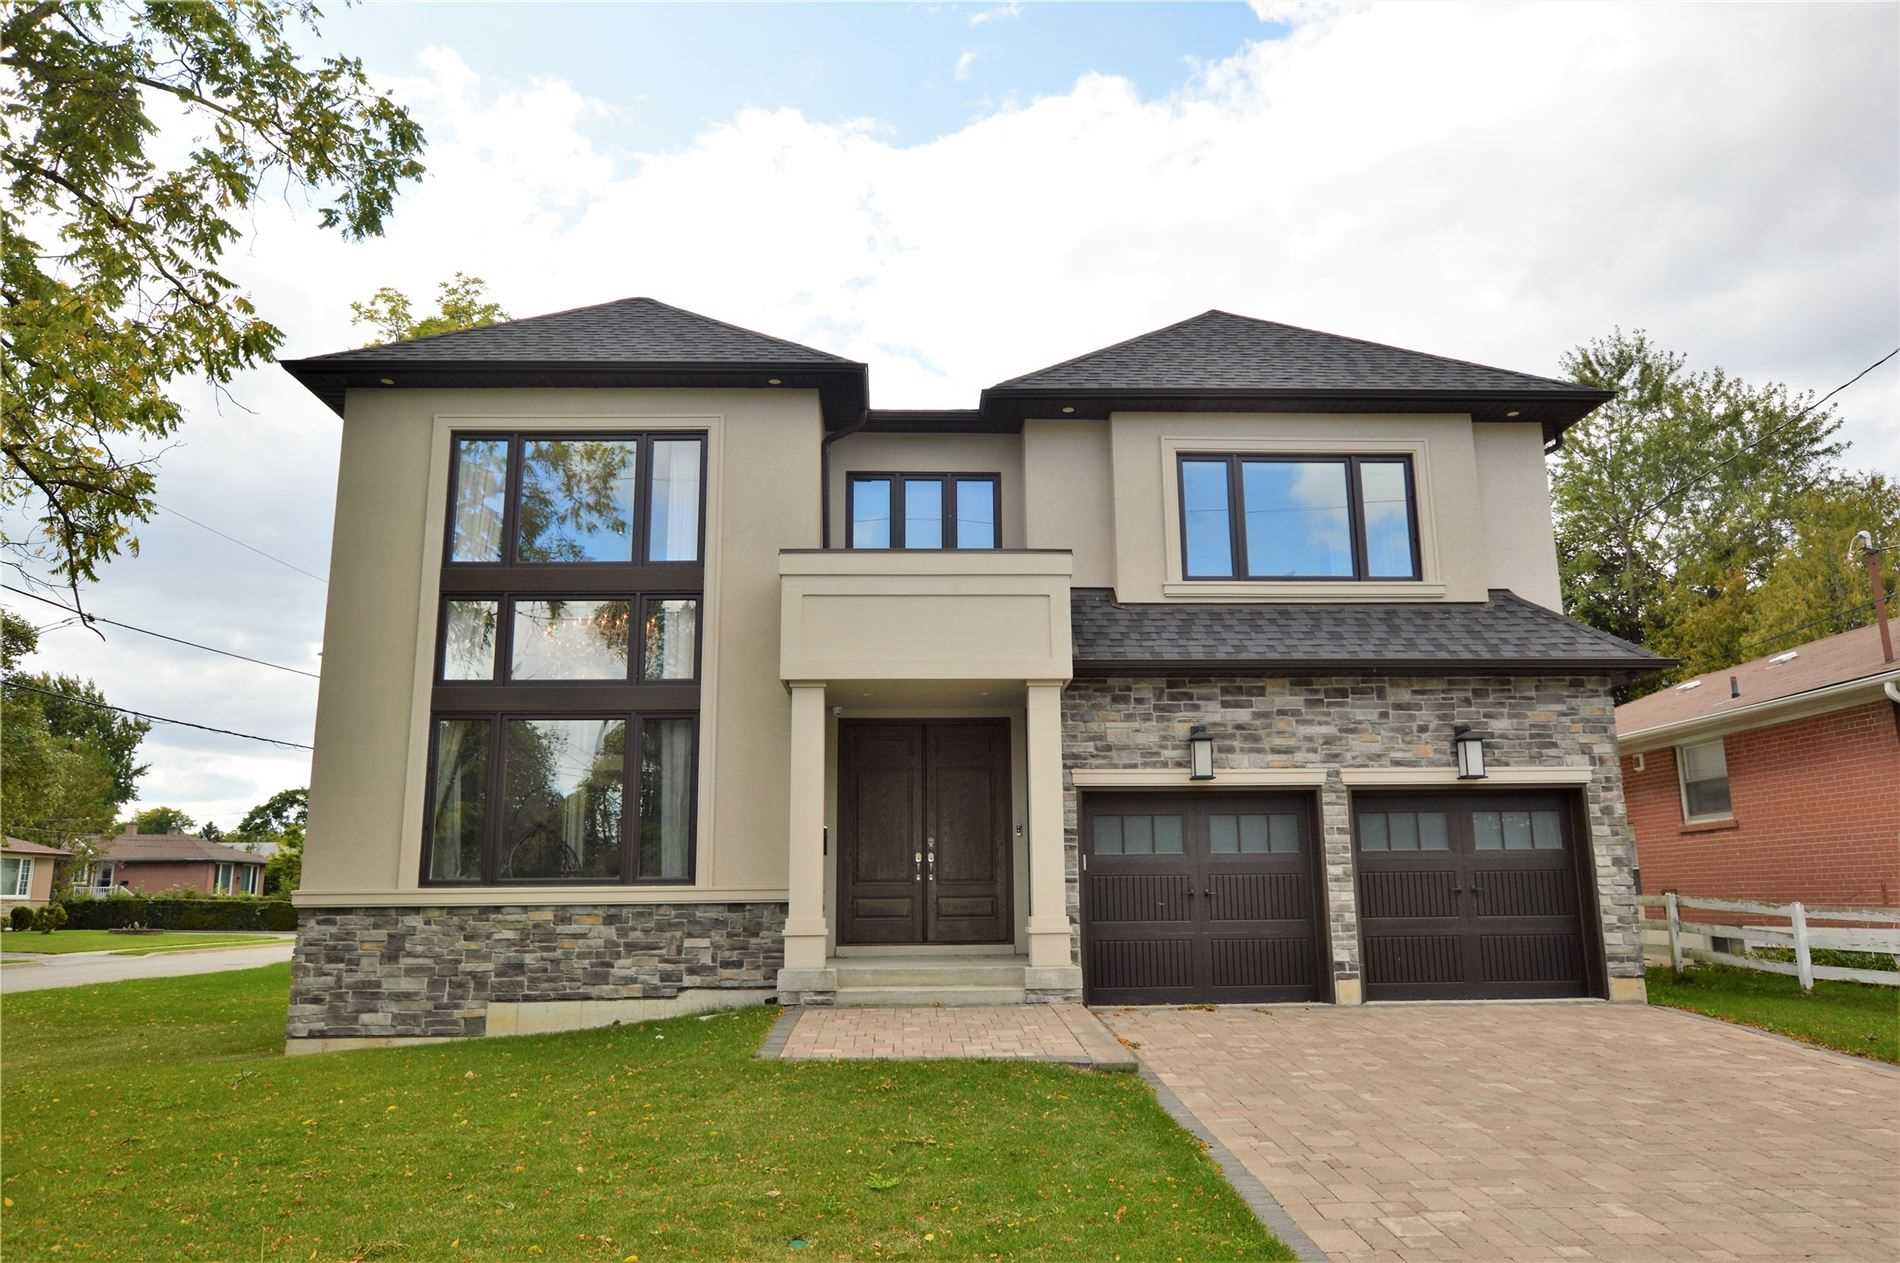 220 Sussex Ave, Richmond Hill, Ontario L4C 2G2, 4 Bedrooms Bedrooms, 10 Rooms Rooms,5 BathroomsBathrooms,Detached,For Sale,Sussex,N4852596